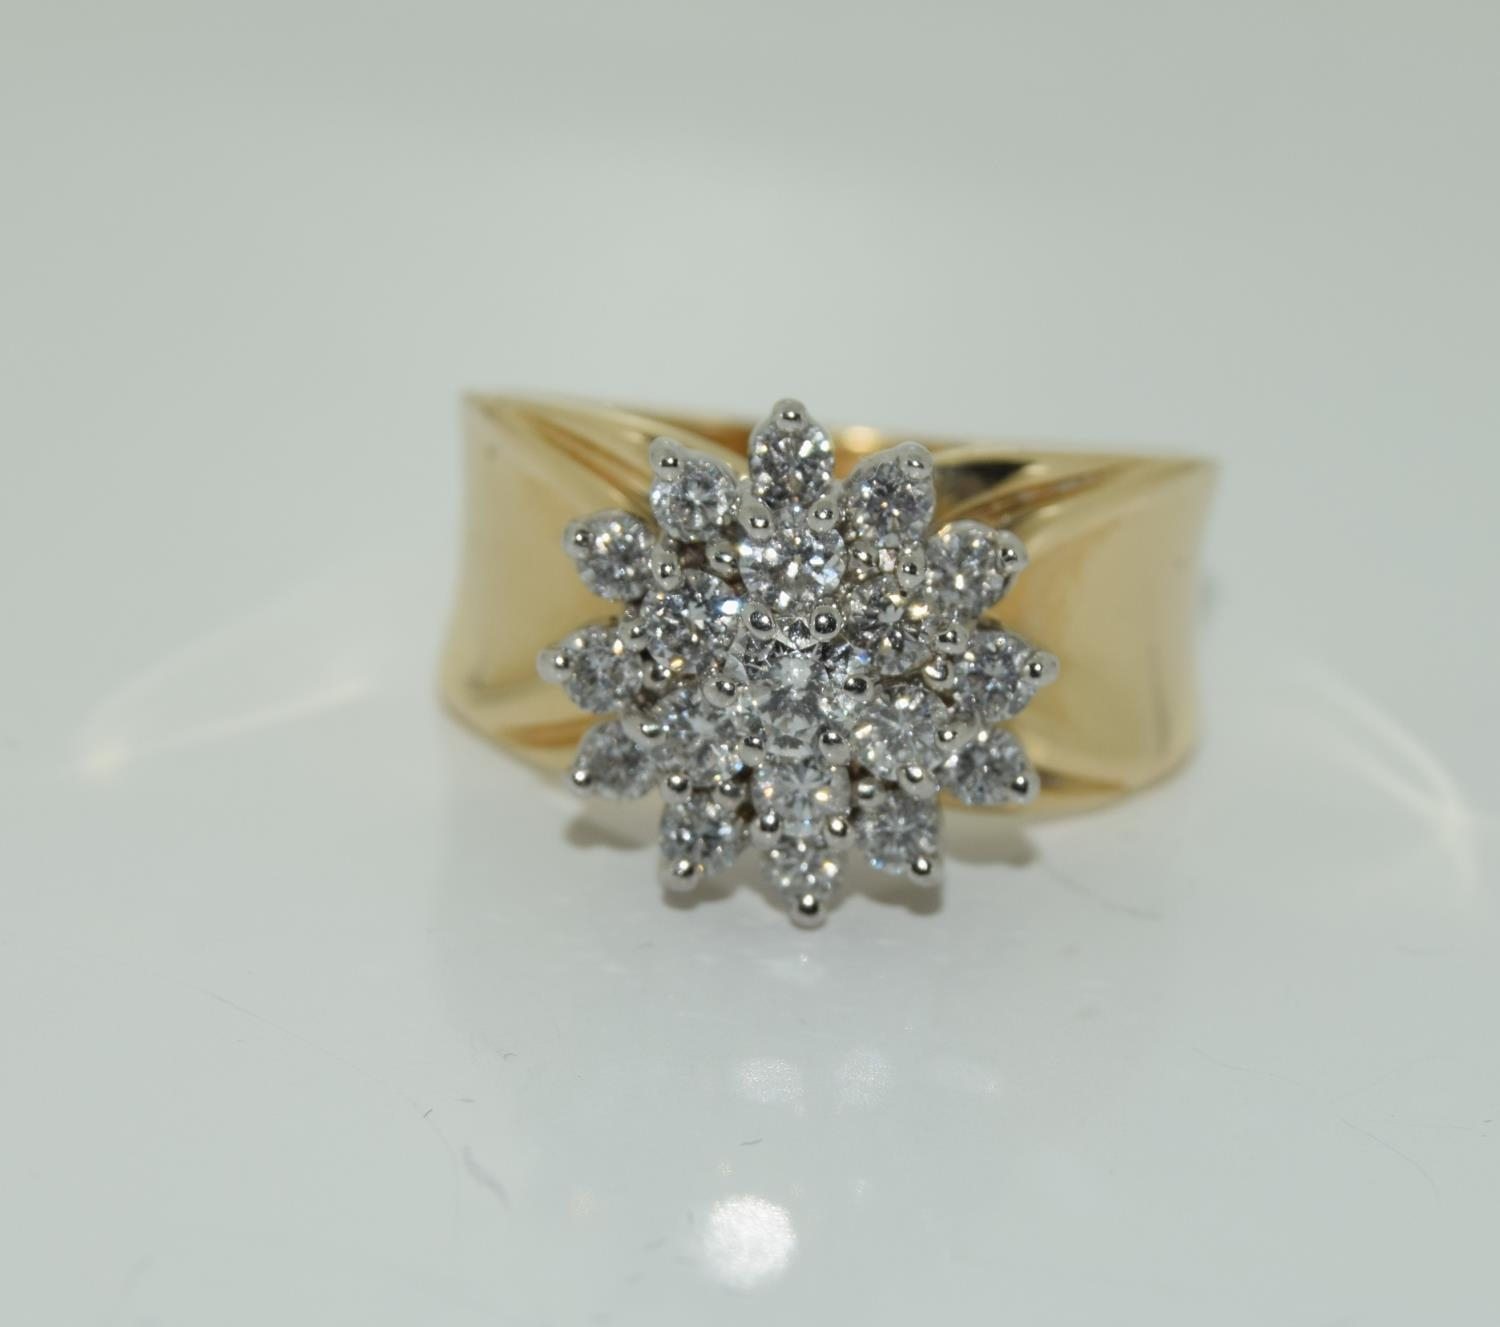 A 14ct yellow gold substantial diamond cluster ring of over 1ct size O